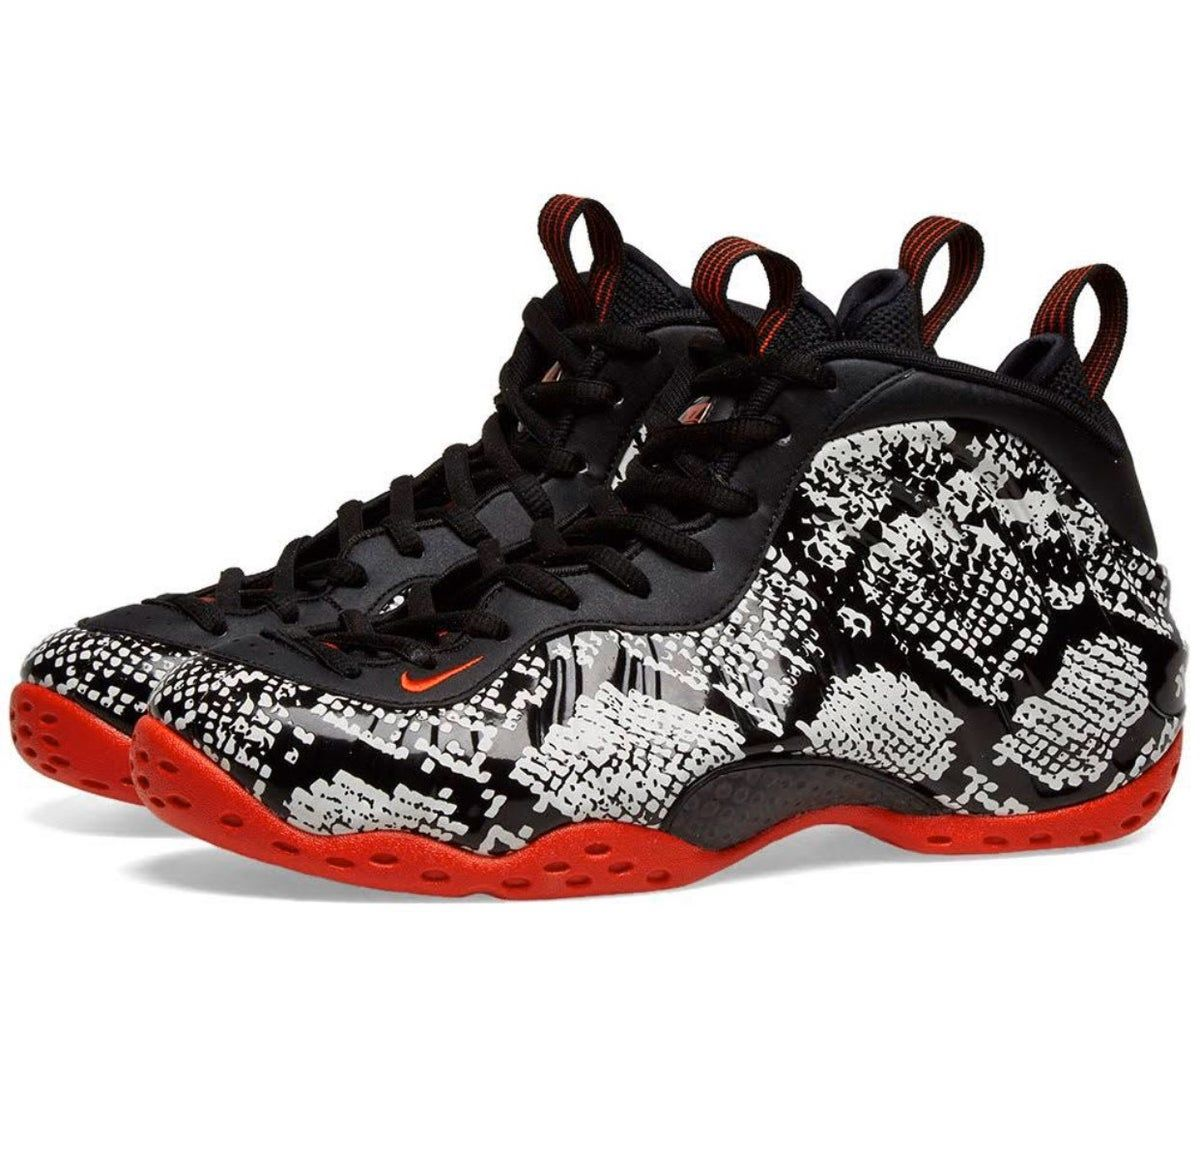 Nike Air Foamposite One Premium Galaxy Alternate SoleU